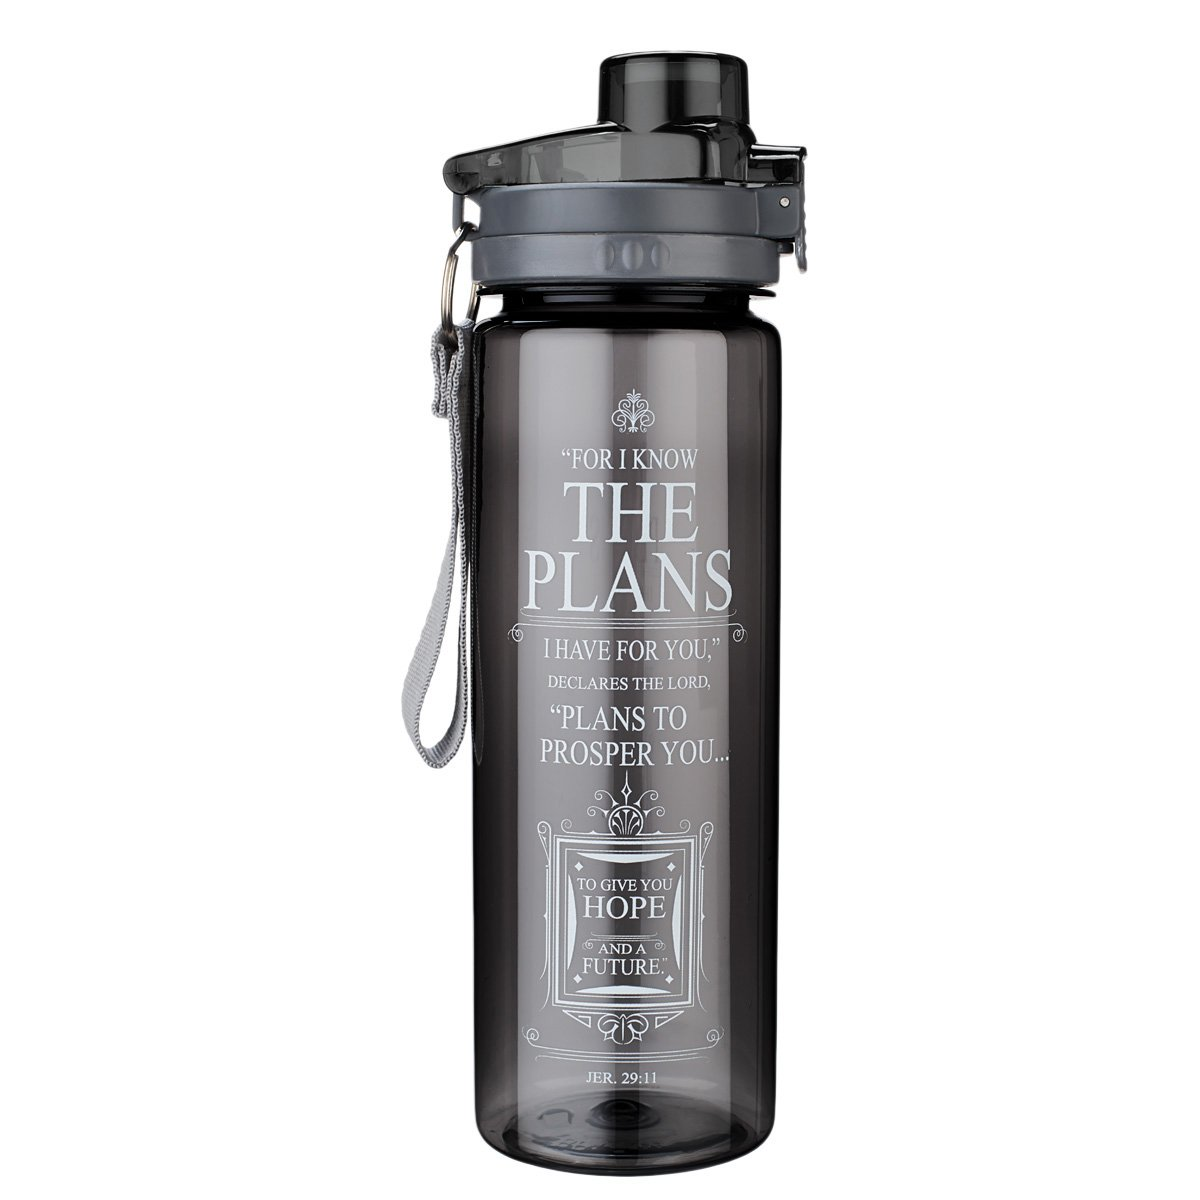 'I Know the Plans' Black Plastic Water Bottle - Jeremiah 29:11